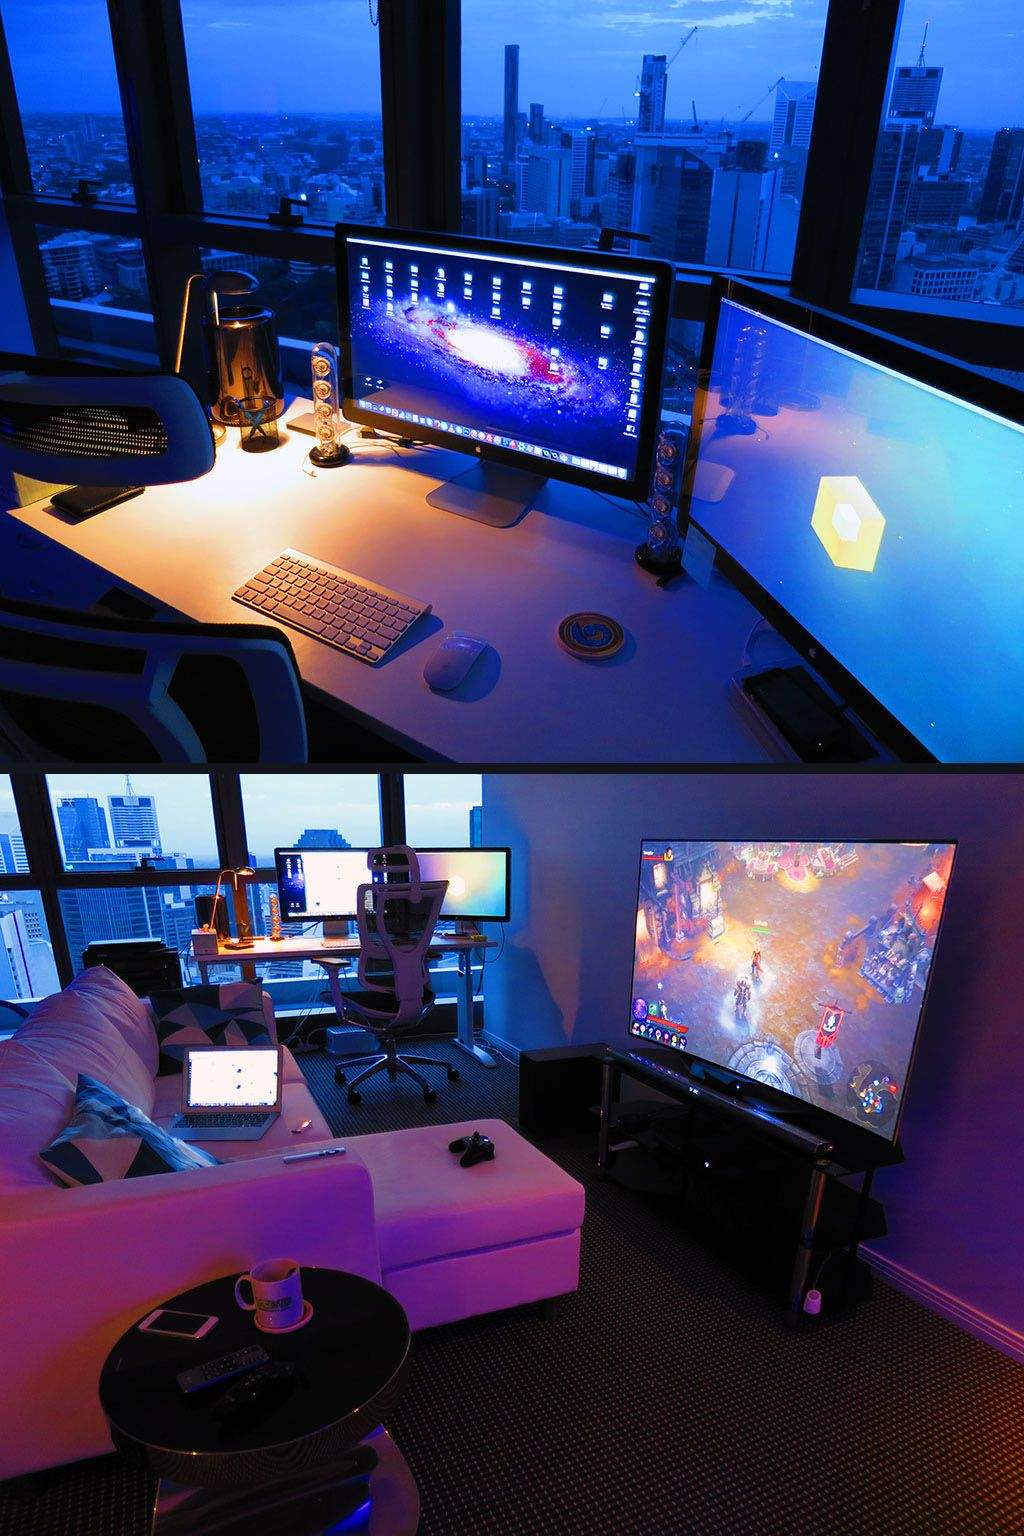 Game development battlestation via reddit user for Gaming zimmer einrichten